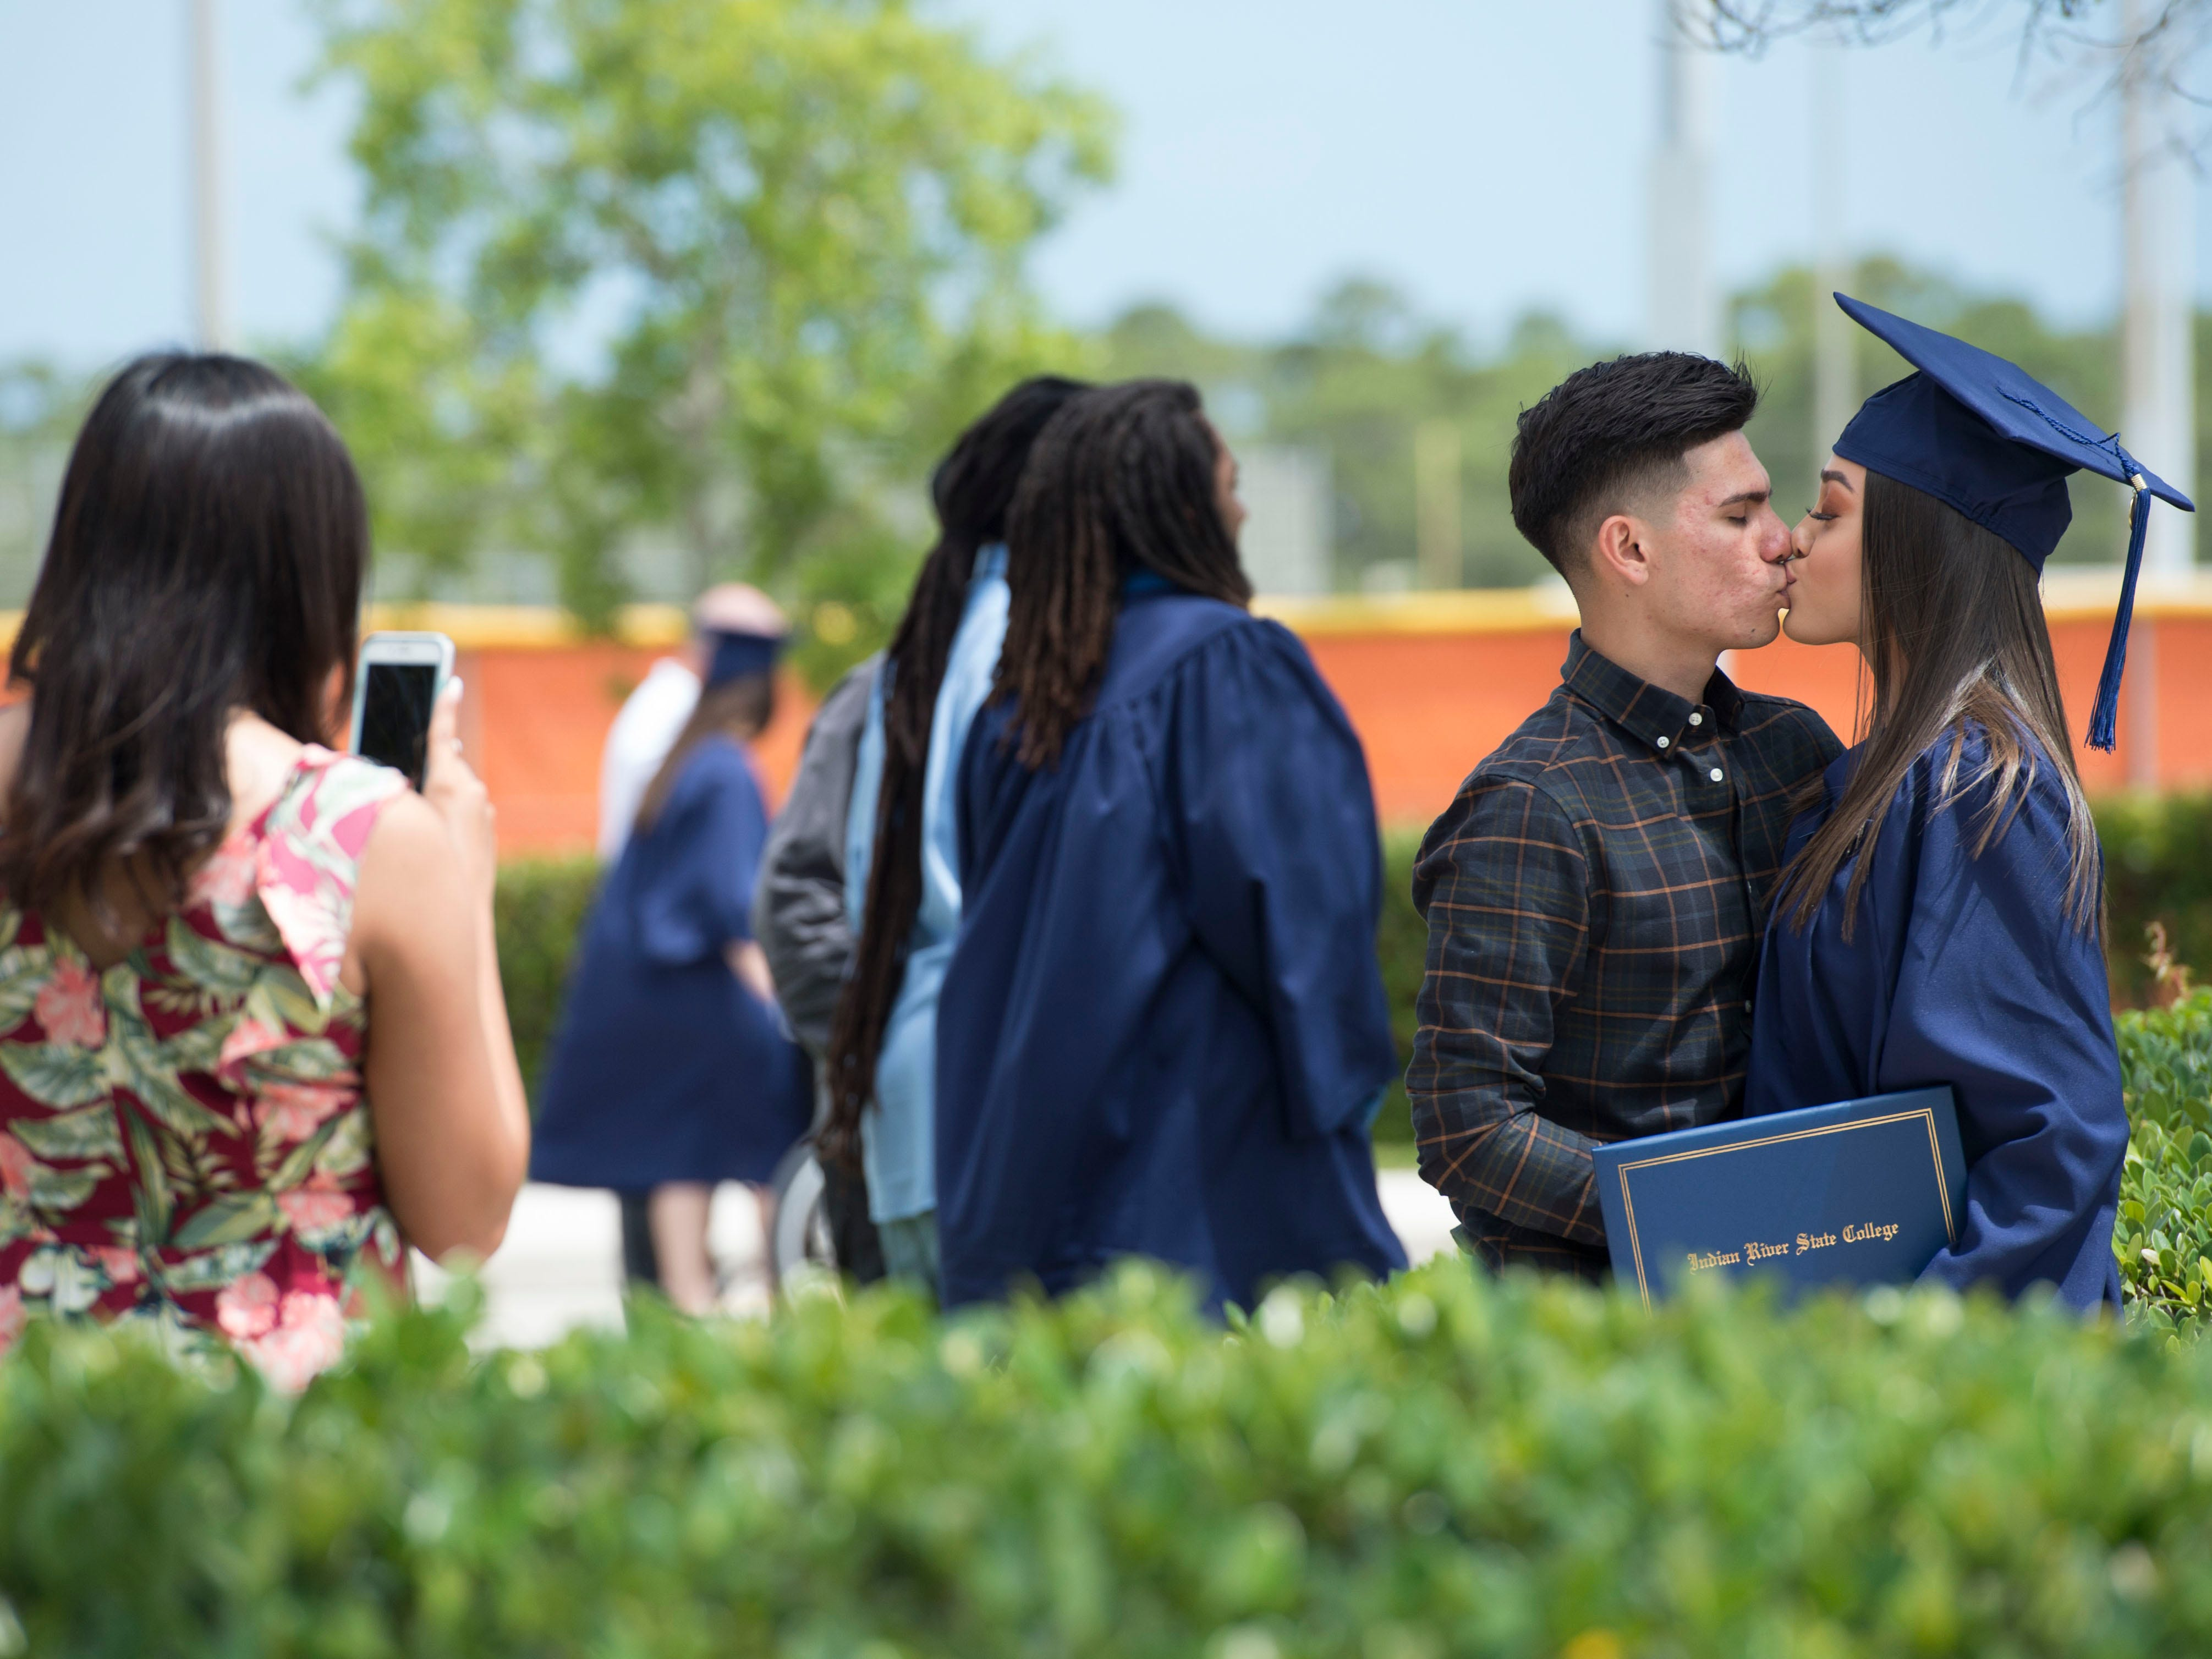 """Josh Gamez, of Fort Pierce, kisses his girlfriend, graduate Jocelyn Falcon, of Port St. Lucie, after more than 400 students earned associate degrees at the first of Indian River State College's four commencement ceremonies May 3, 2018 at the Havert L. Fenn Center in Fort Pierce. In total, the college graduated nearly 4,000 students, the largest class in the school's history. """"You're a special class in a lot of ways,"""" said Edwin Massey, president of Indian River State College. """"What you have become today is a college graduate. Take those skills... and you will be unstoppable."""""""